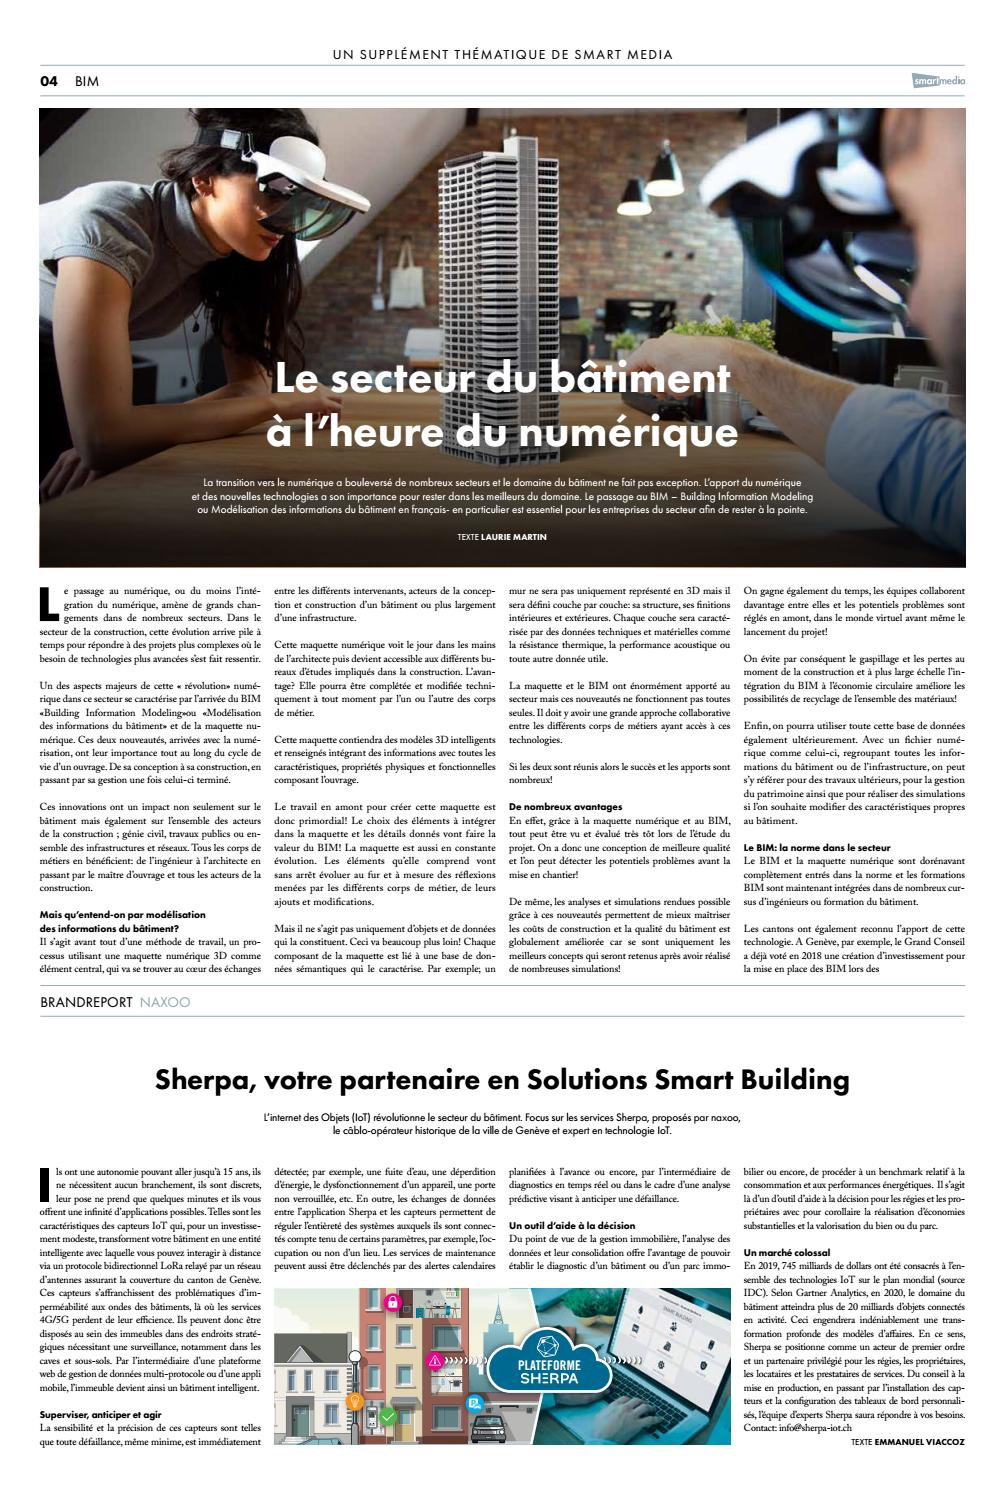 Les Corps De Métier Du Batiment focus it & digitalisationsmart media - issuu